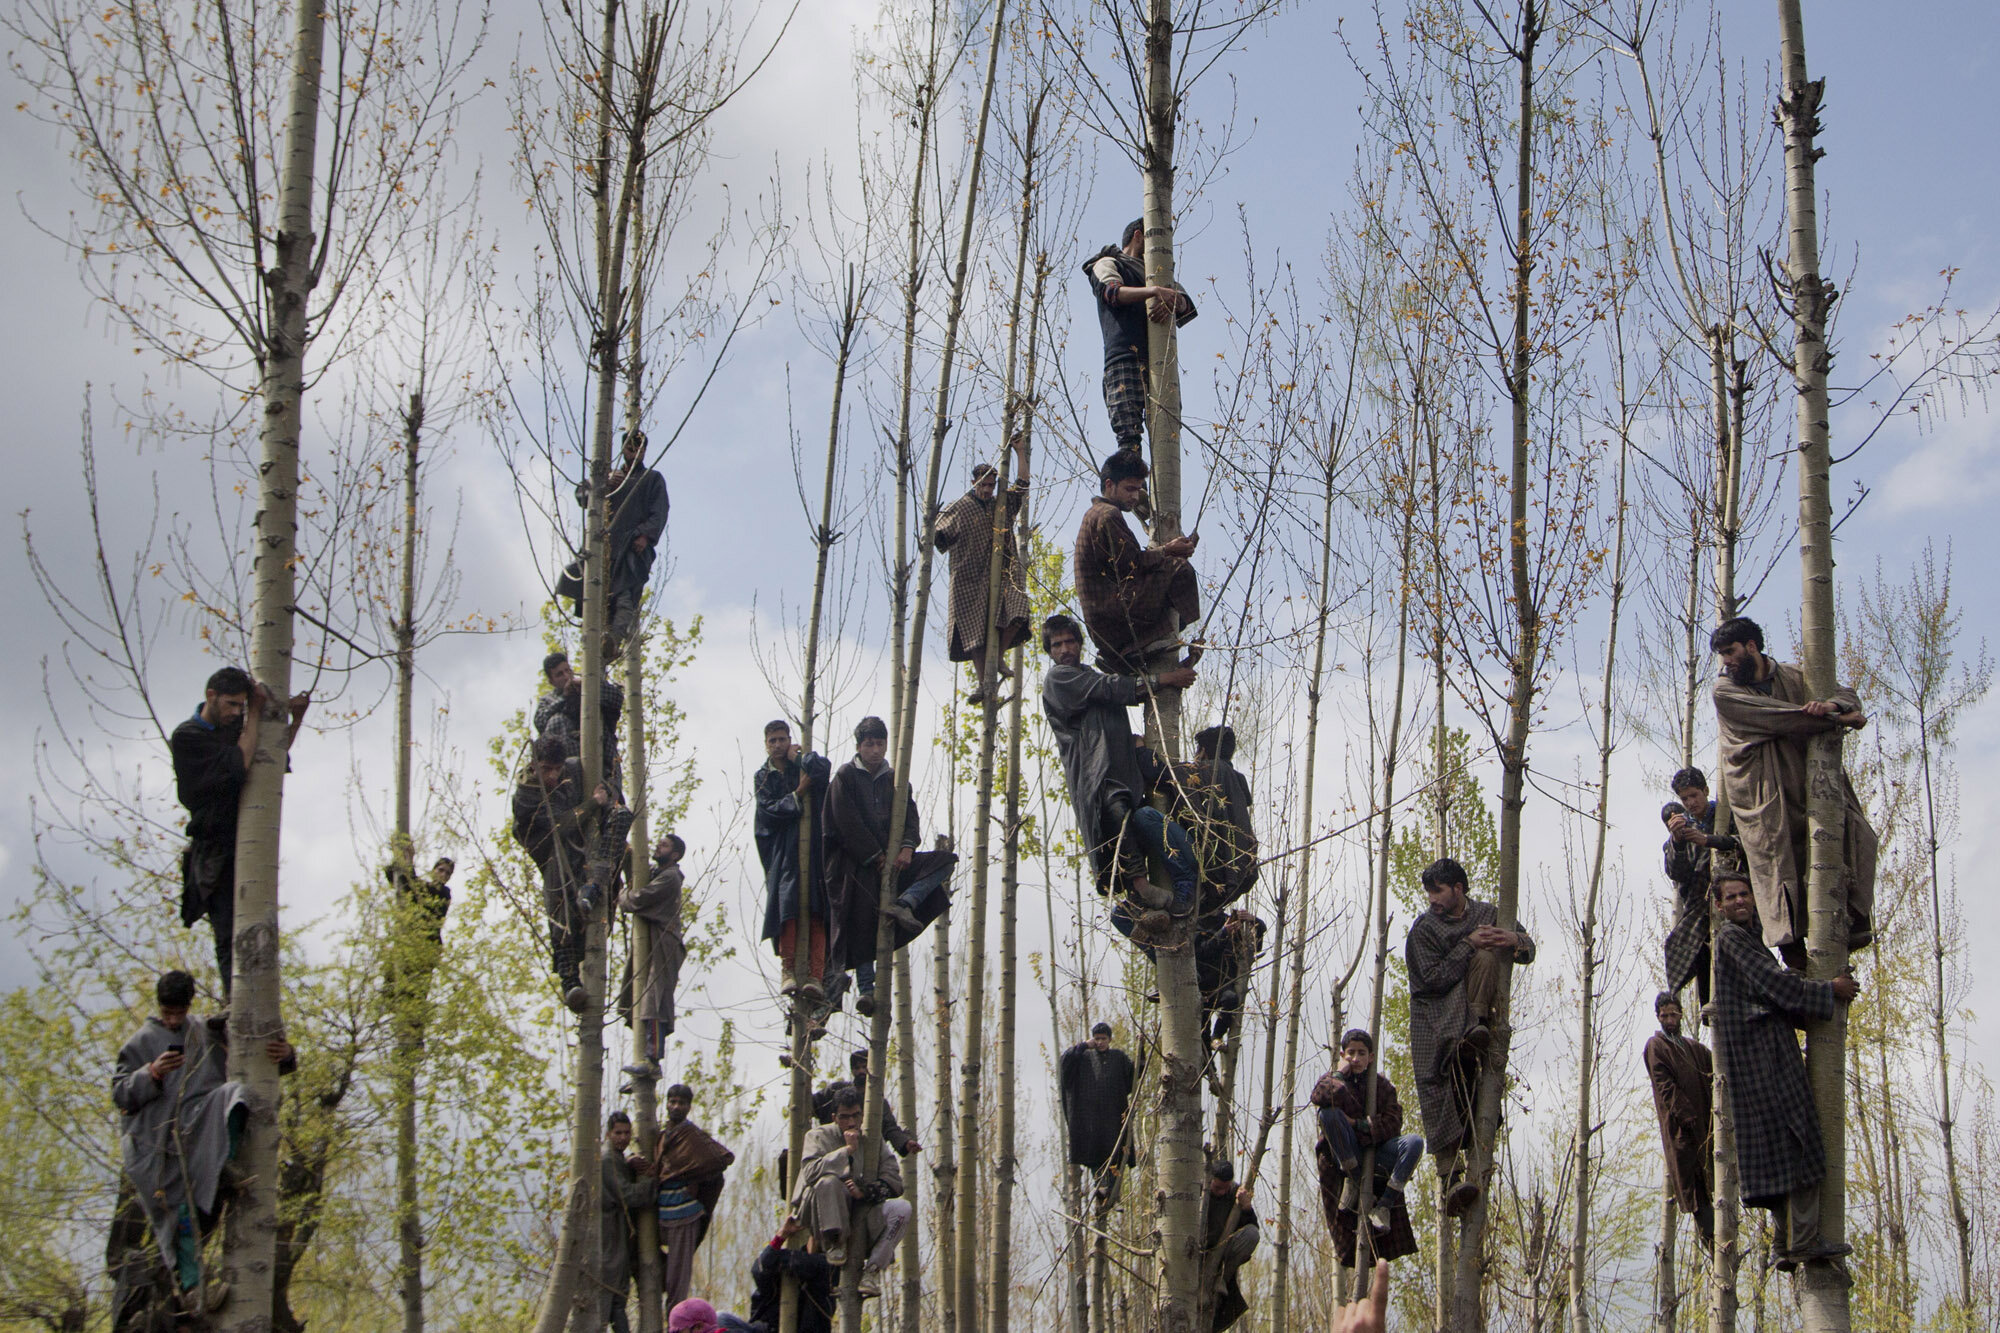 Kashmiri Muslims climb trees to watch the funeral procession of Waseem Malla, a suspected militant of Hizbul Mujahideen, in Pehlipora, some 60 kilometers (35 miles) south of Srinagar, Indian controlled Kashmir, April 7, 2016. (AP Photo/Dar Yasin)